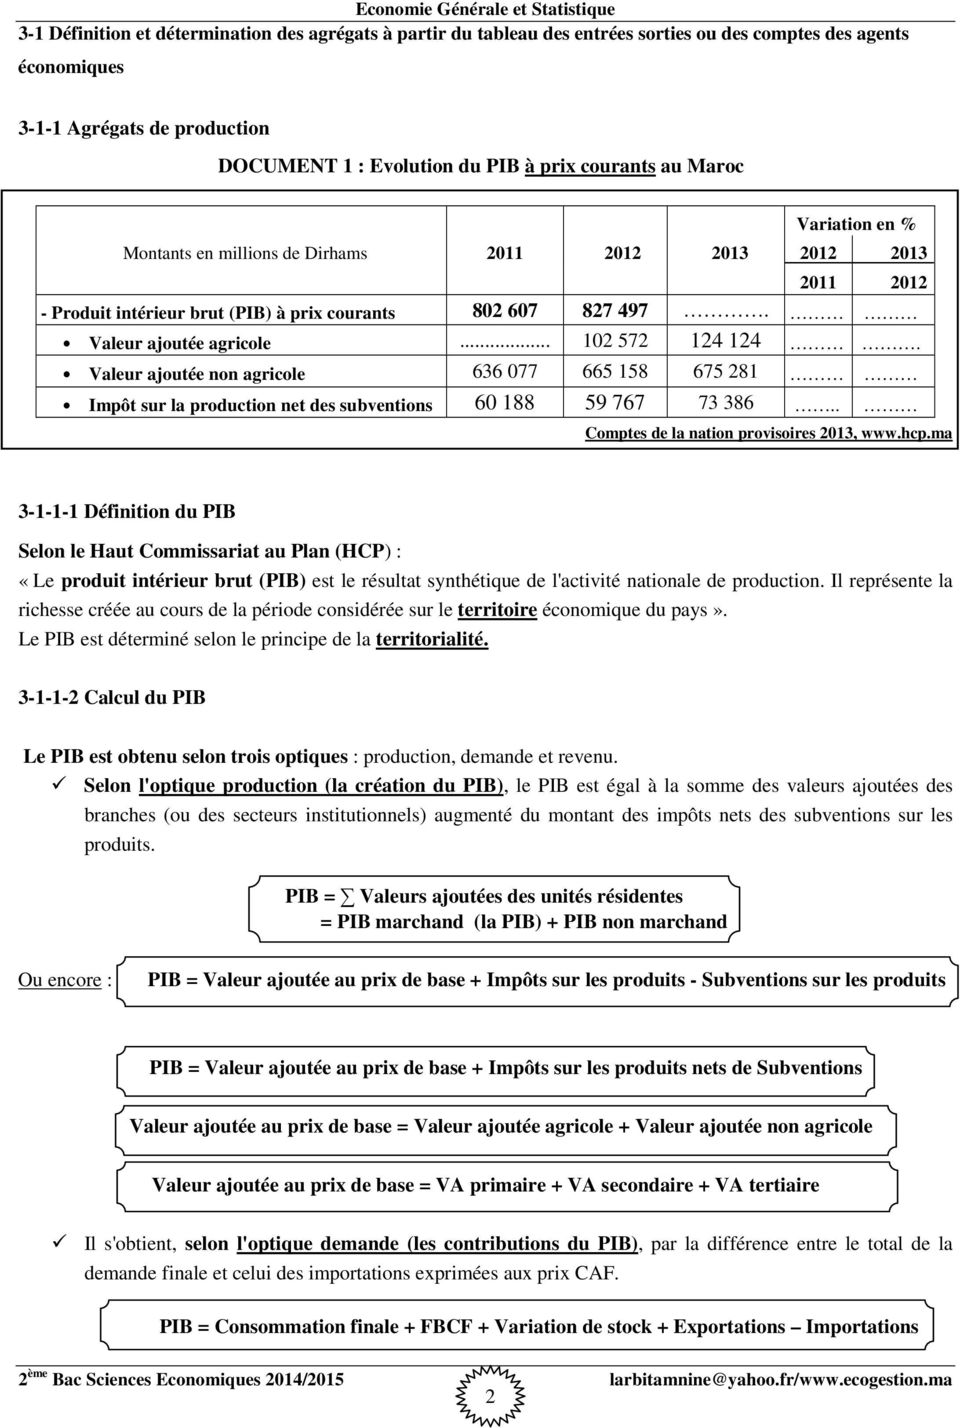 Economie generale et statistique 2 me bac sciences for Definition du produit interieur brut